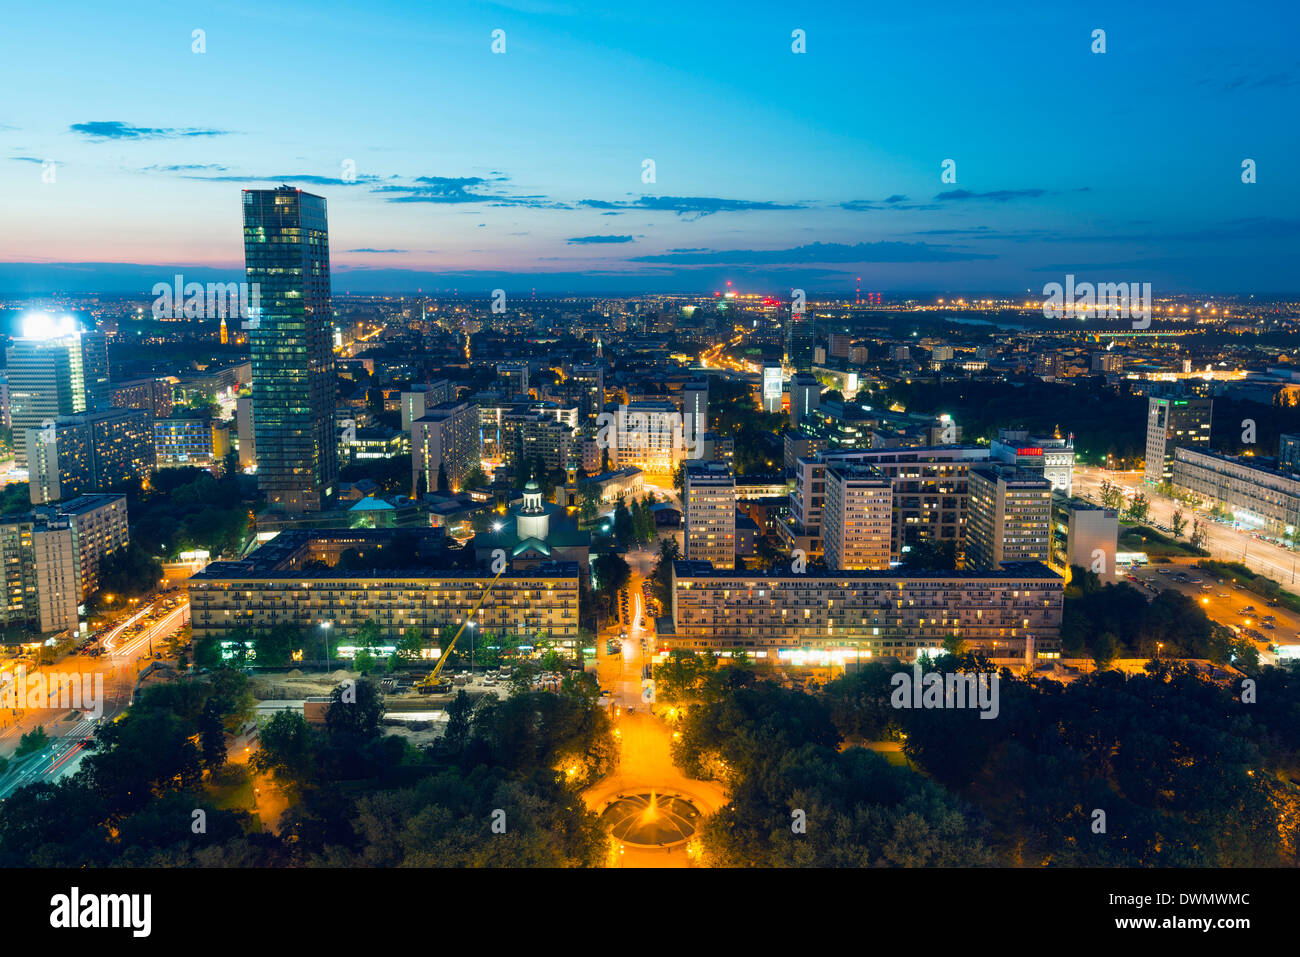 Vue sur la ville de palais de la Culture et des sciences, Varsovie, Pologne, Europe Photo Stock